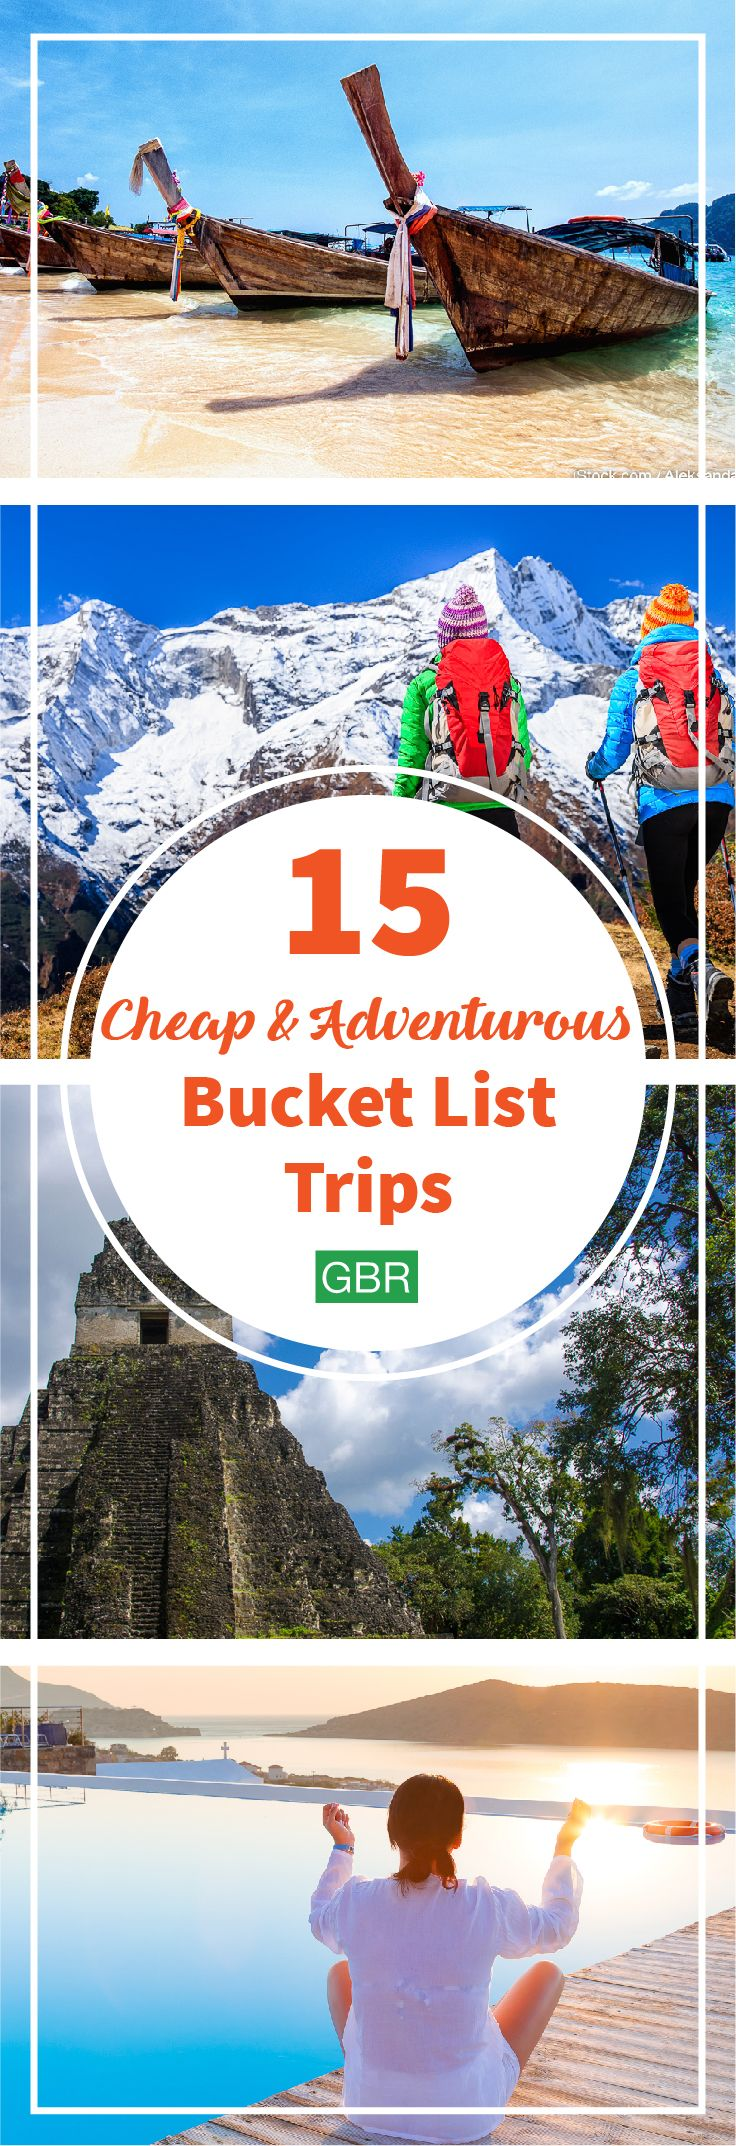 Check these adventurous trips off your travel bucket list without blowing your budget.